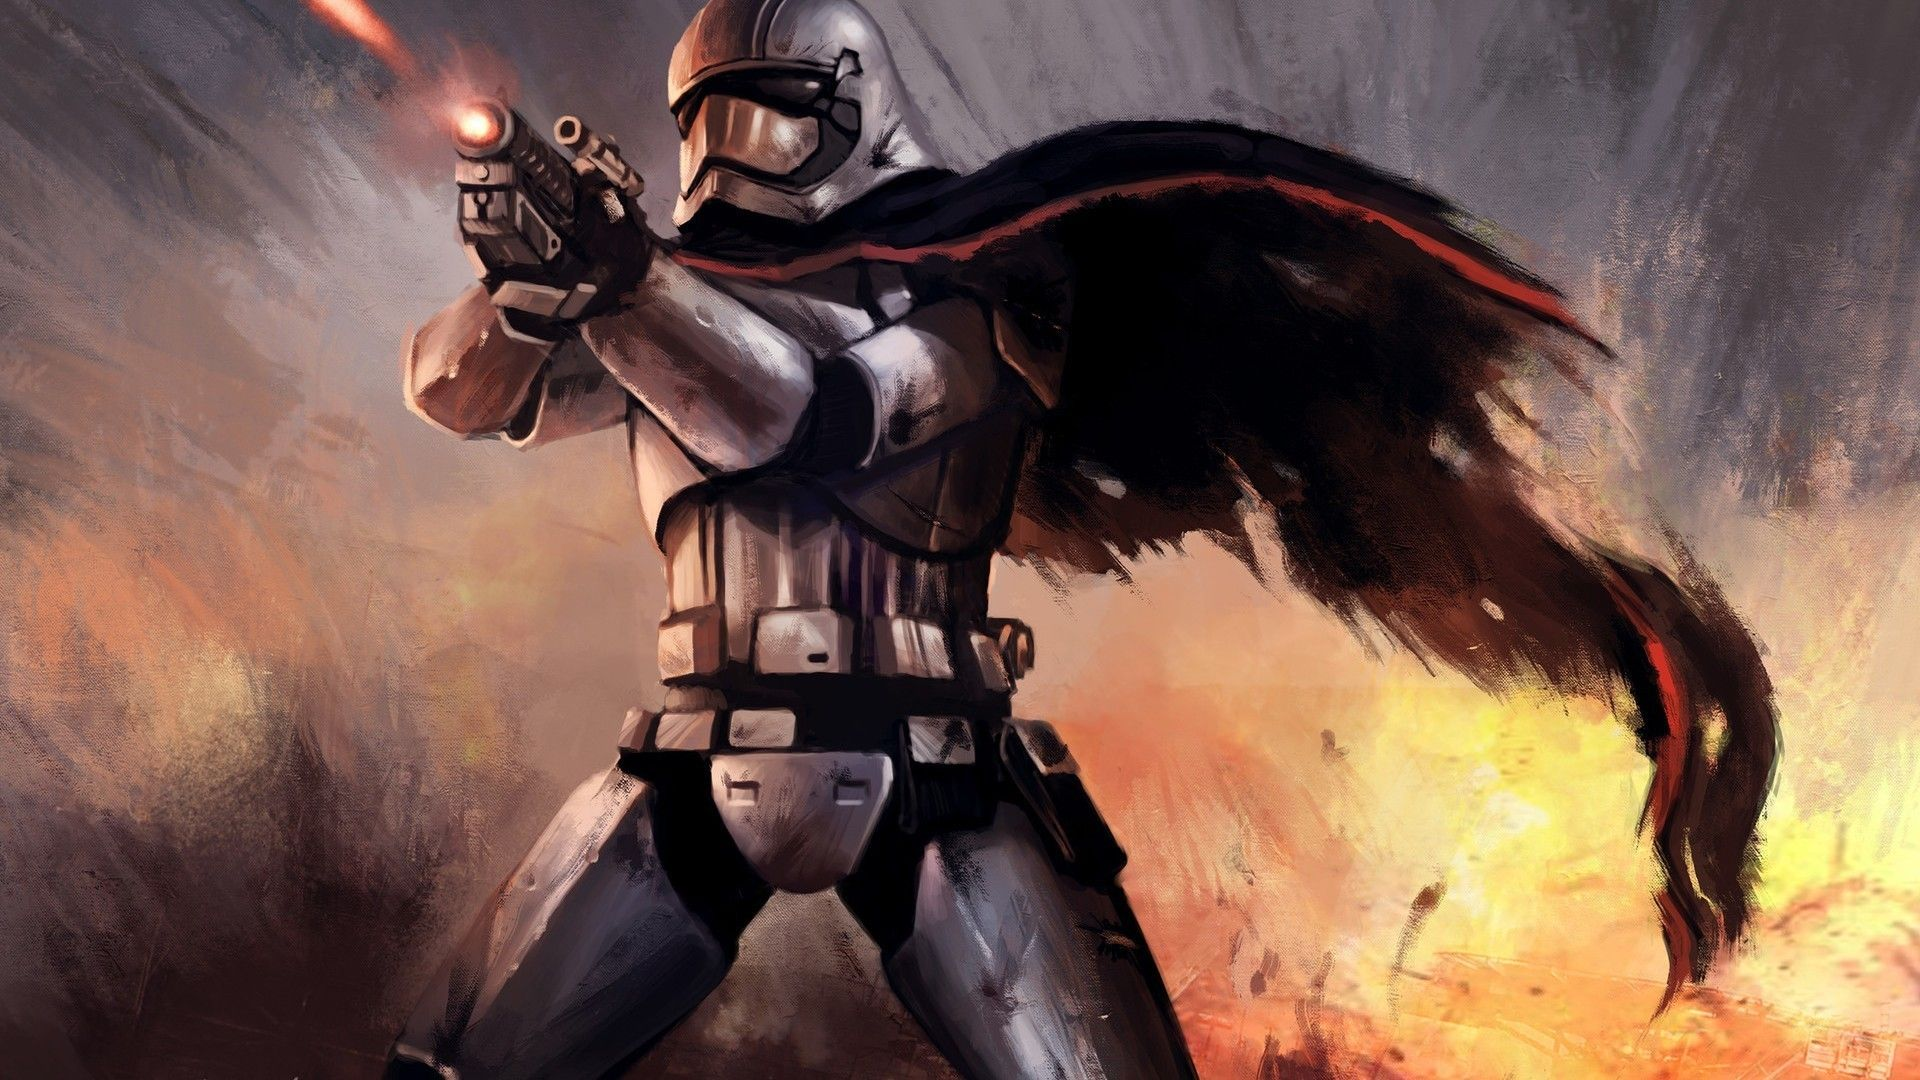 Captain Phasma wallpaper ·① Download free cool HD backgrounds for ...